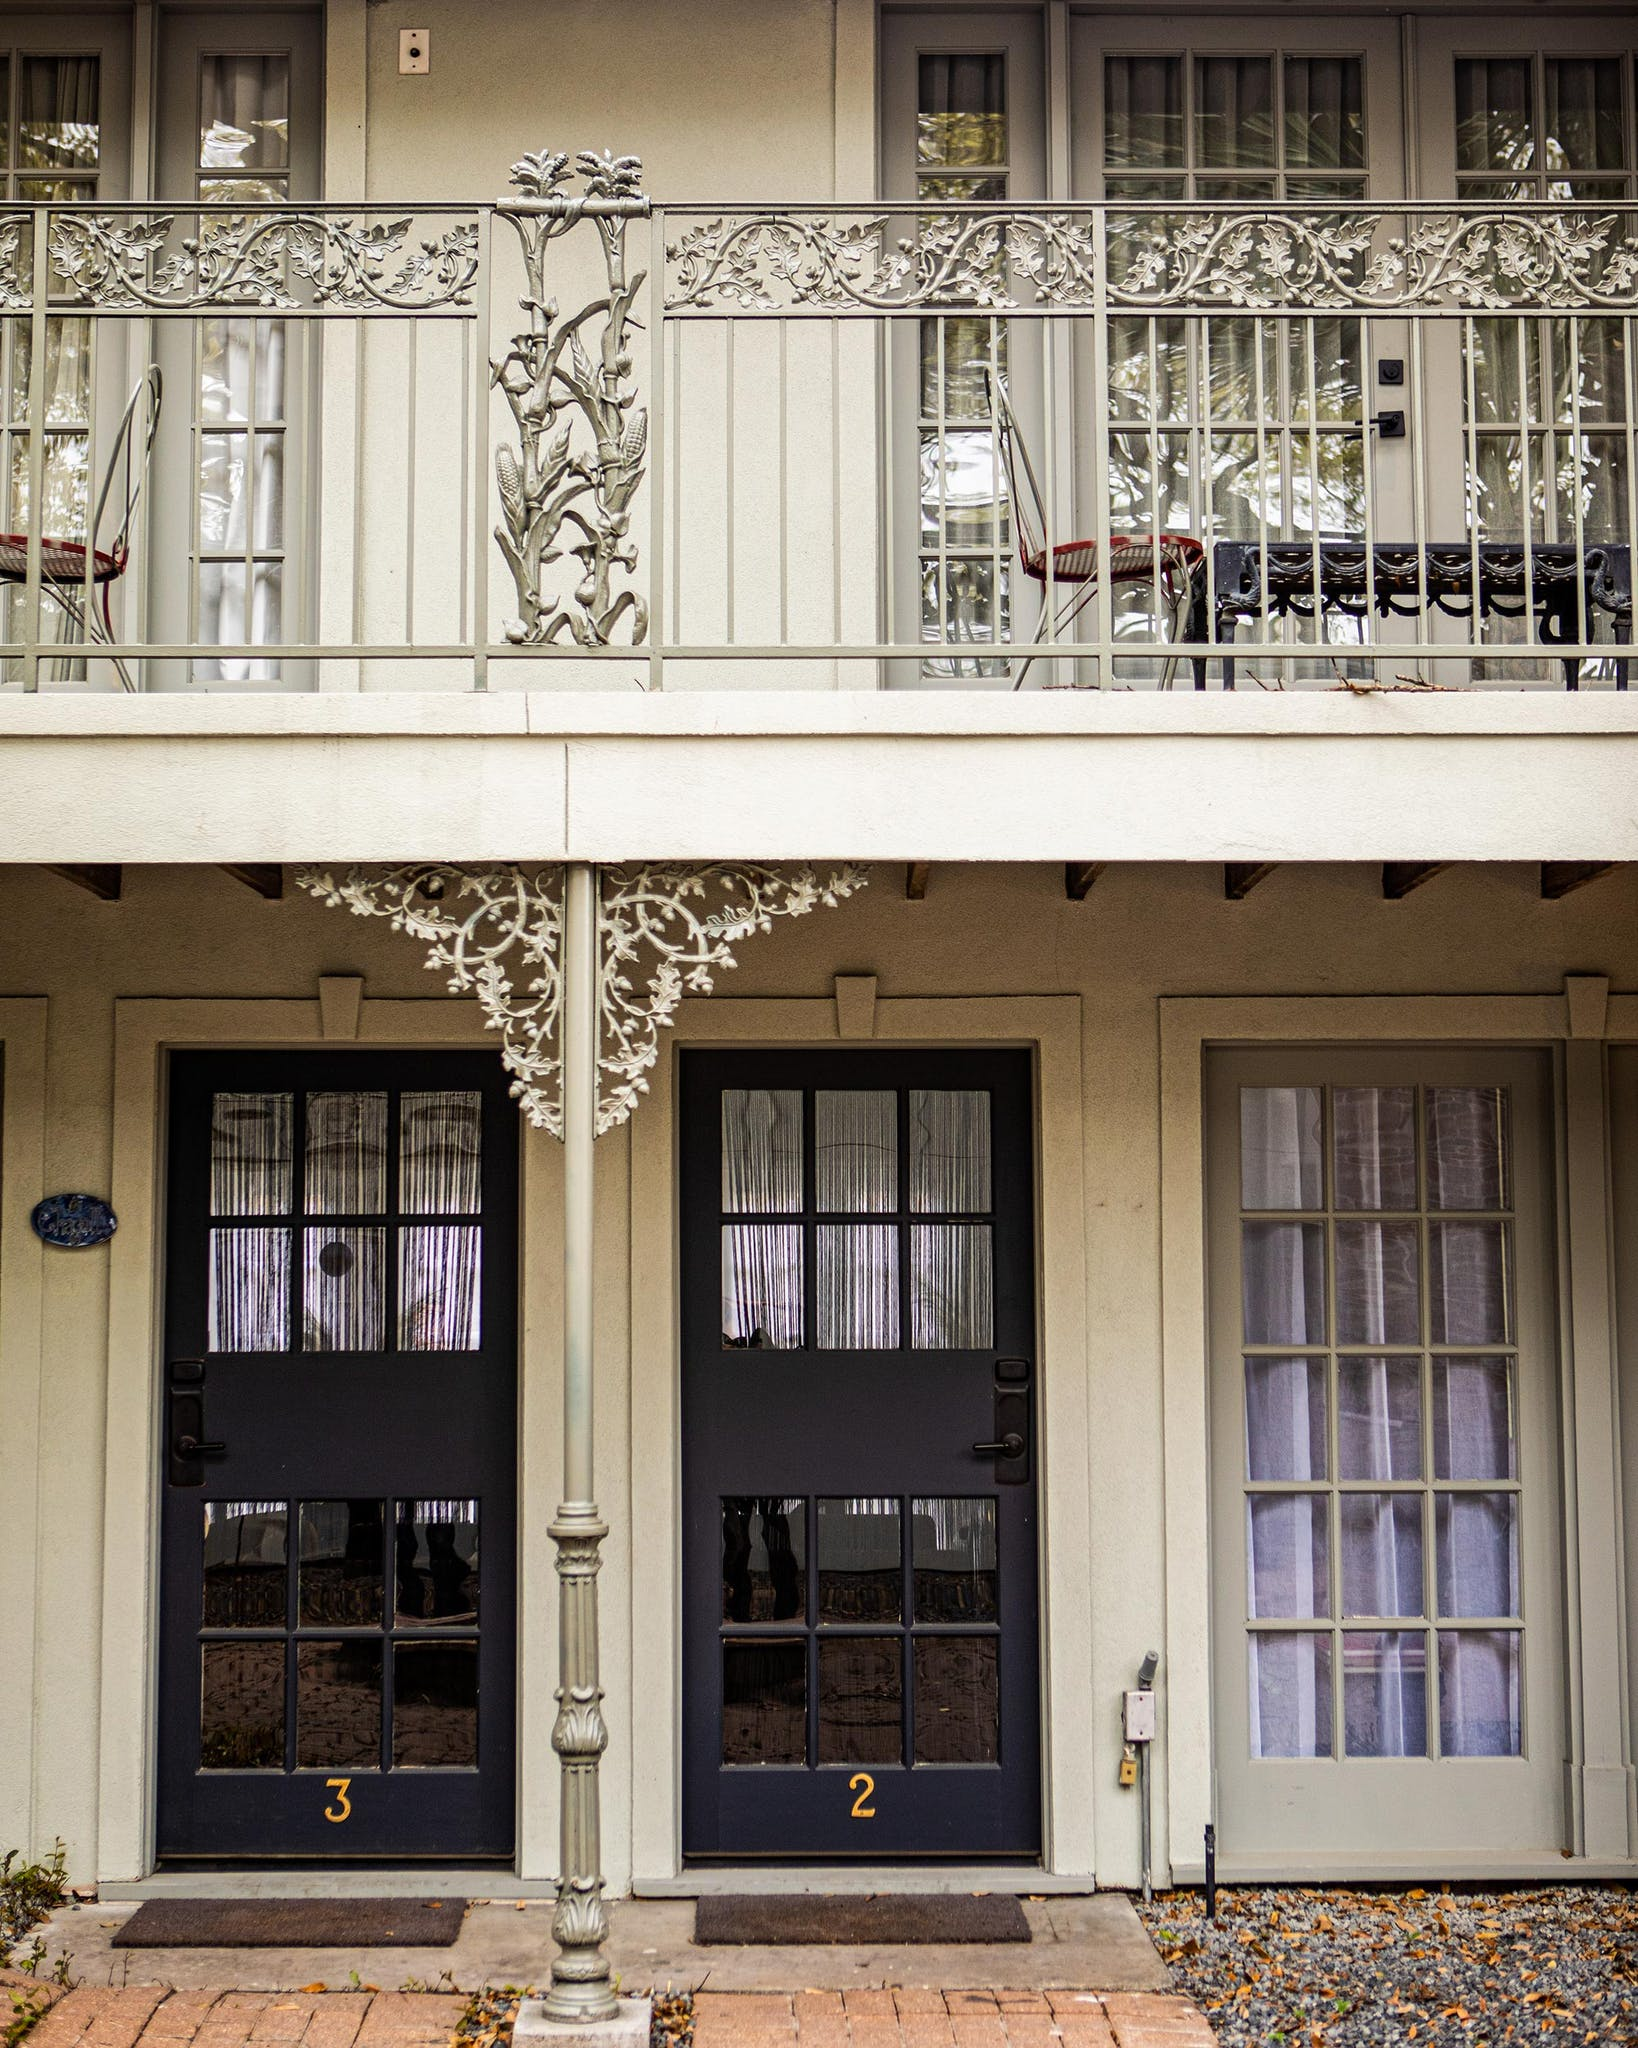 If the courtyard of the garden bungalows feels like the French Quarter, it's no coincidence: Steve brought the wrought iron over from New Orleans, his hometown.